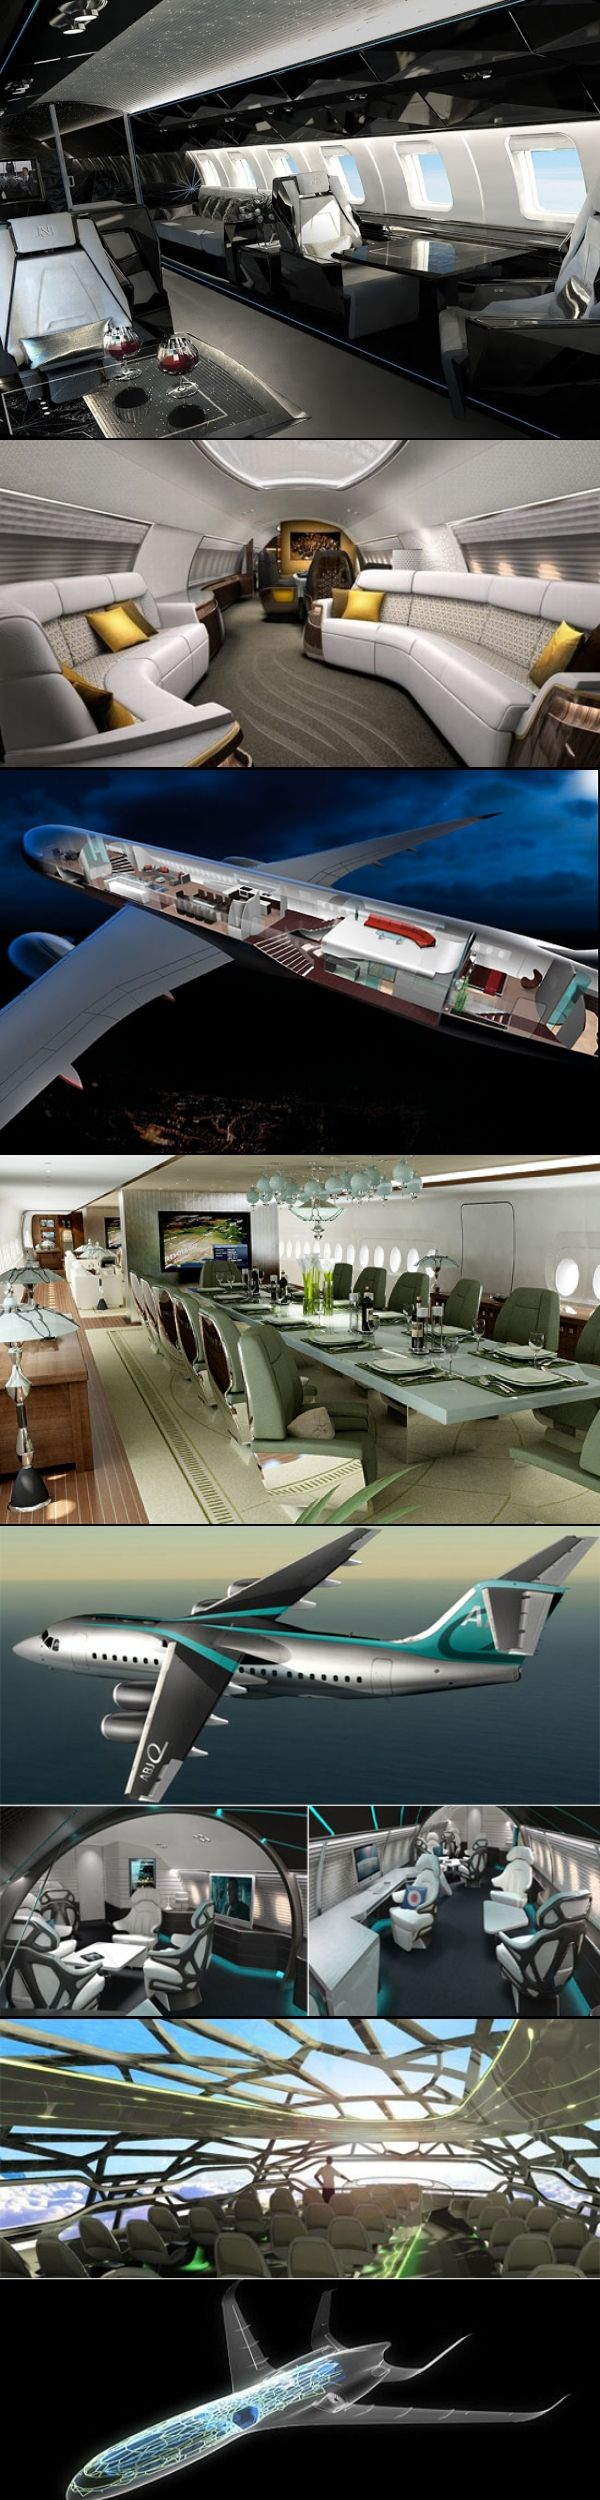 Luxury jets/SERIOUSLY????